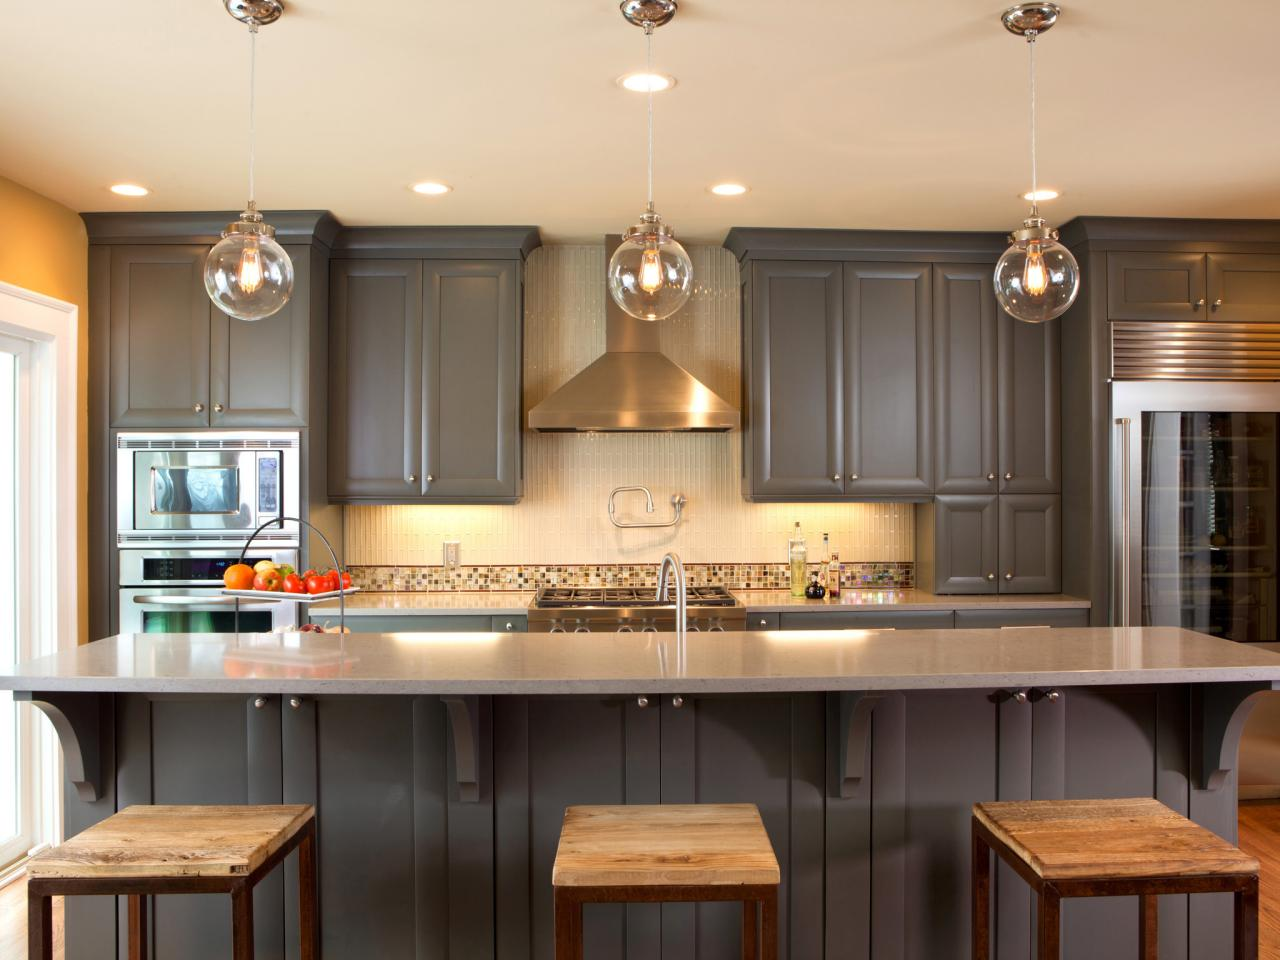 Concept kitchen paint ideas ideas for painting kitchen cabinets ukedpmd